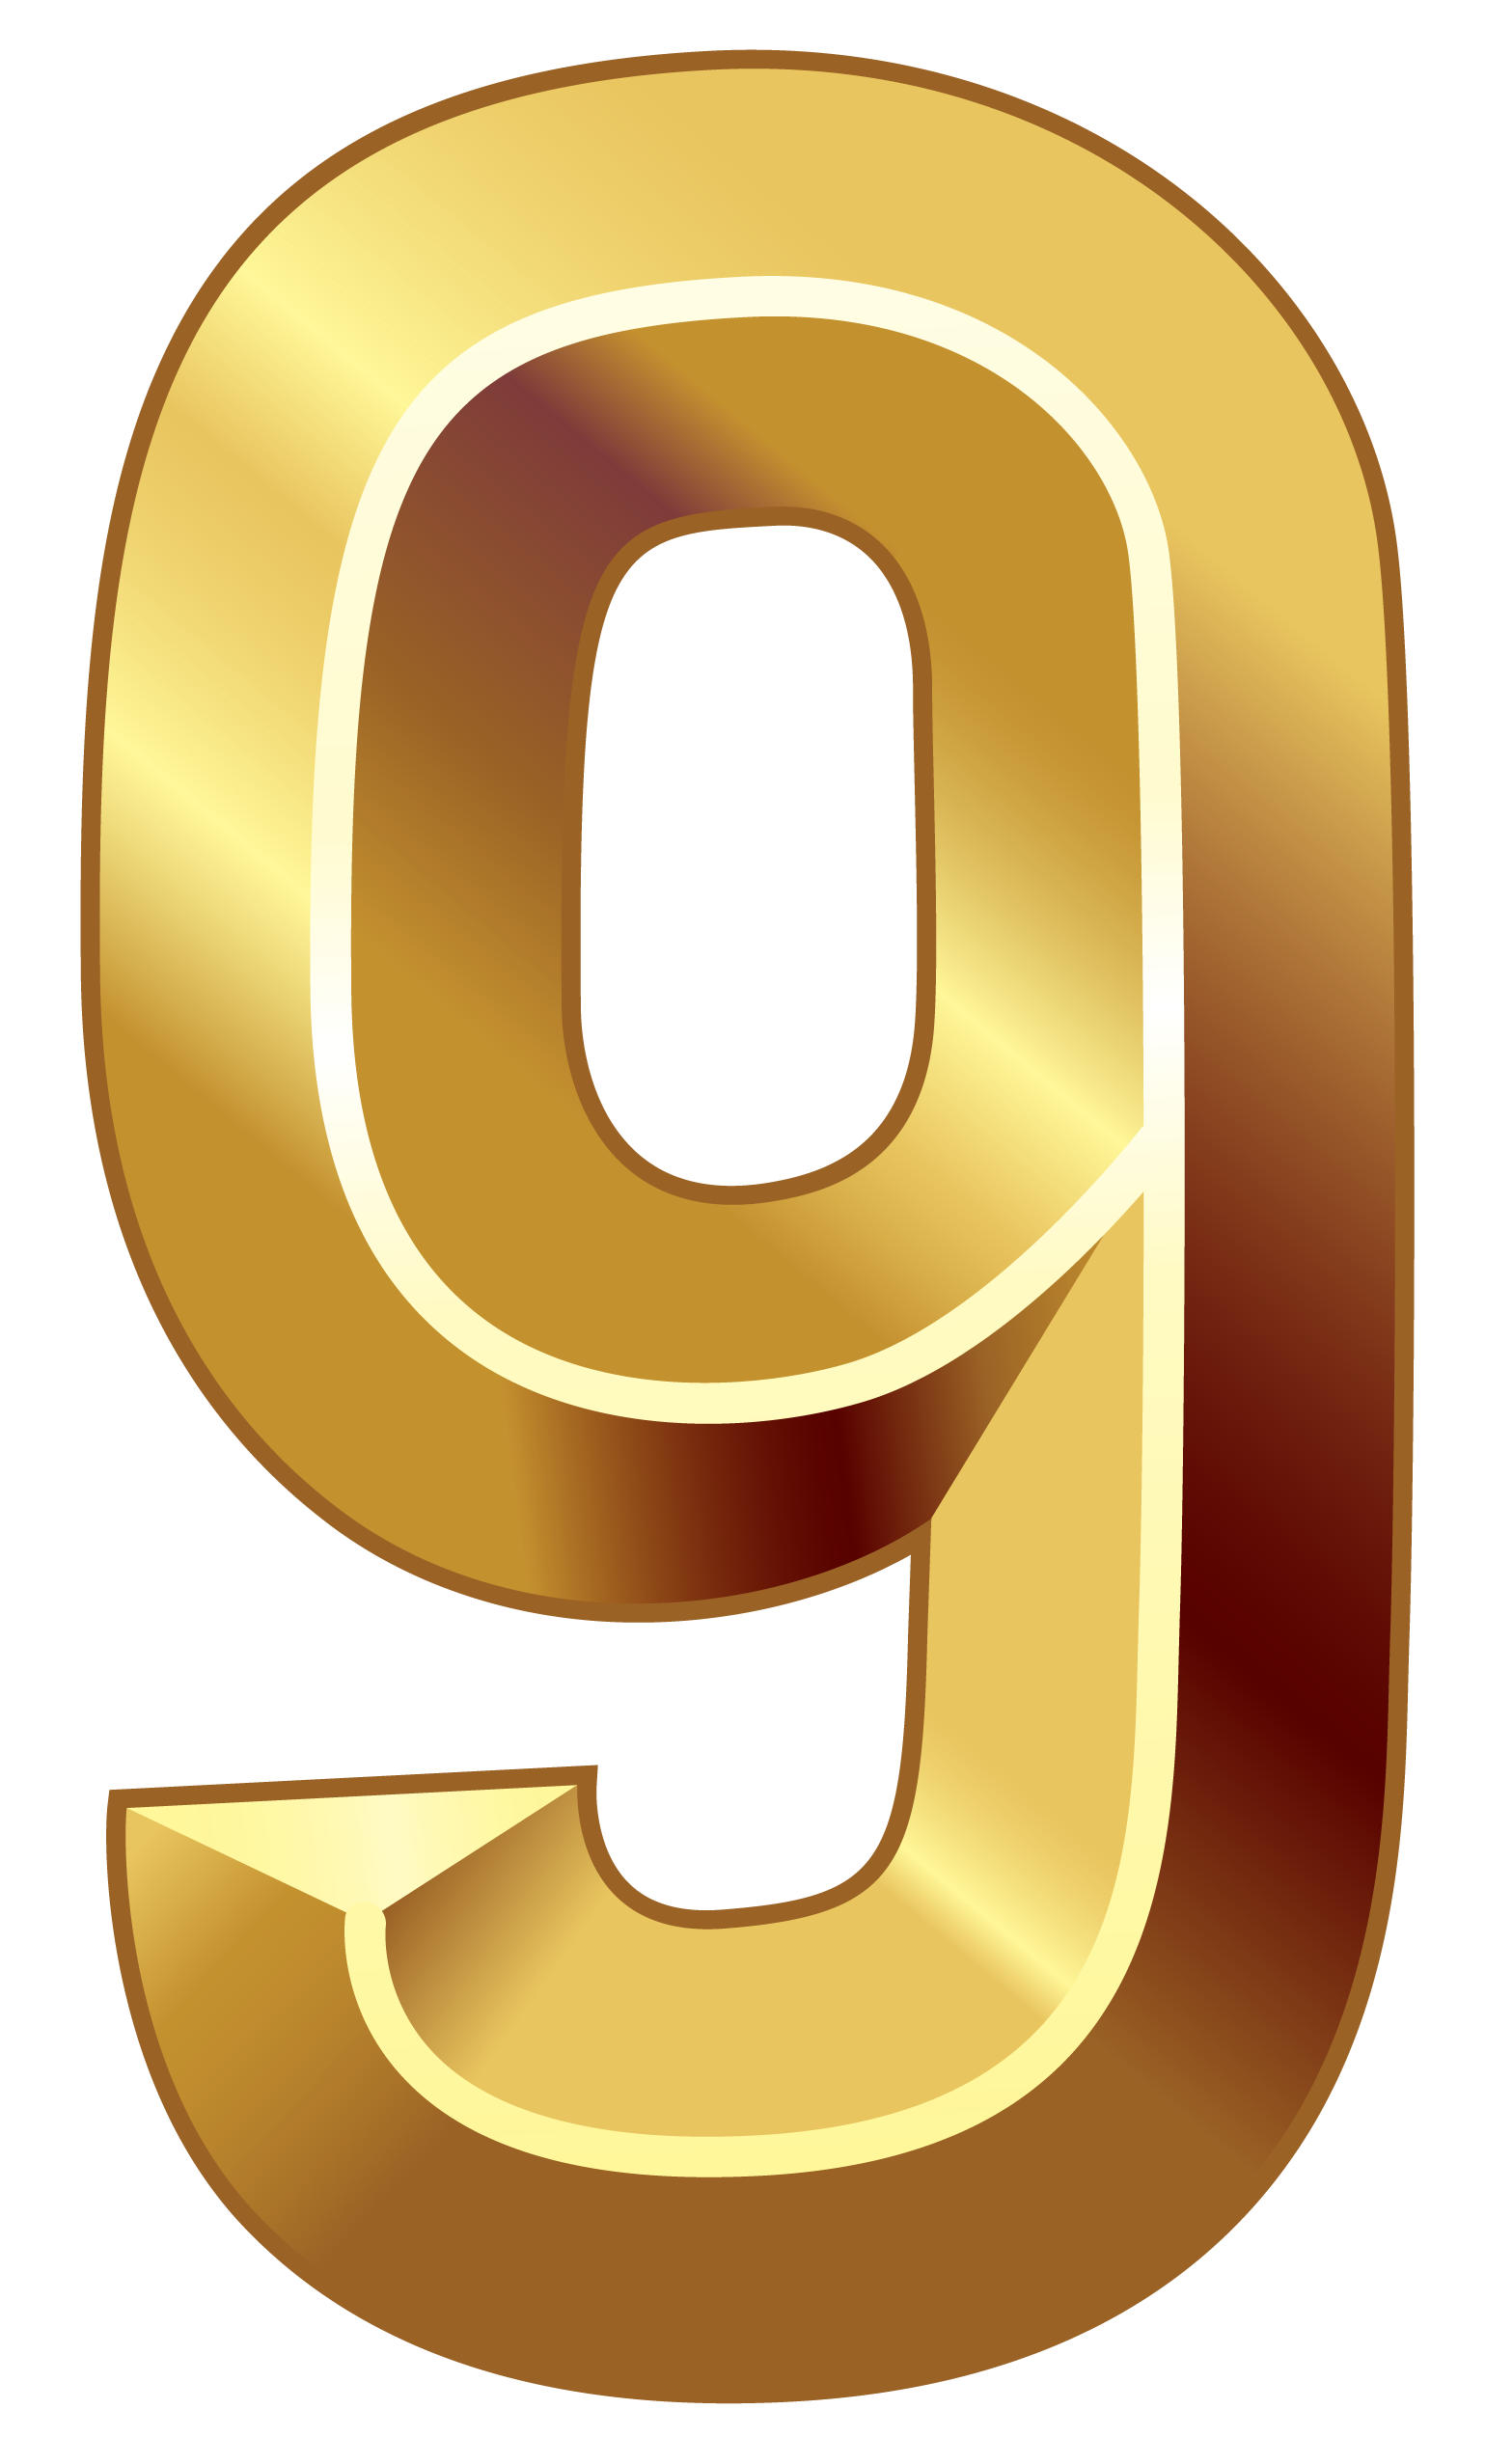 Number clipart nine Number Clipart size Gallery PNG